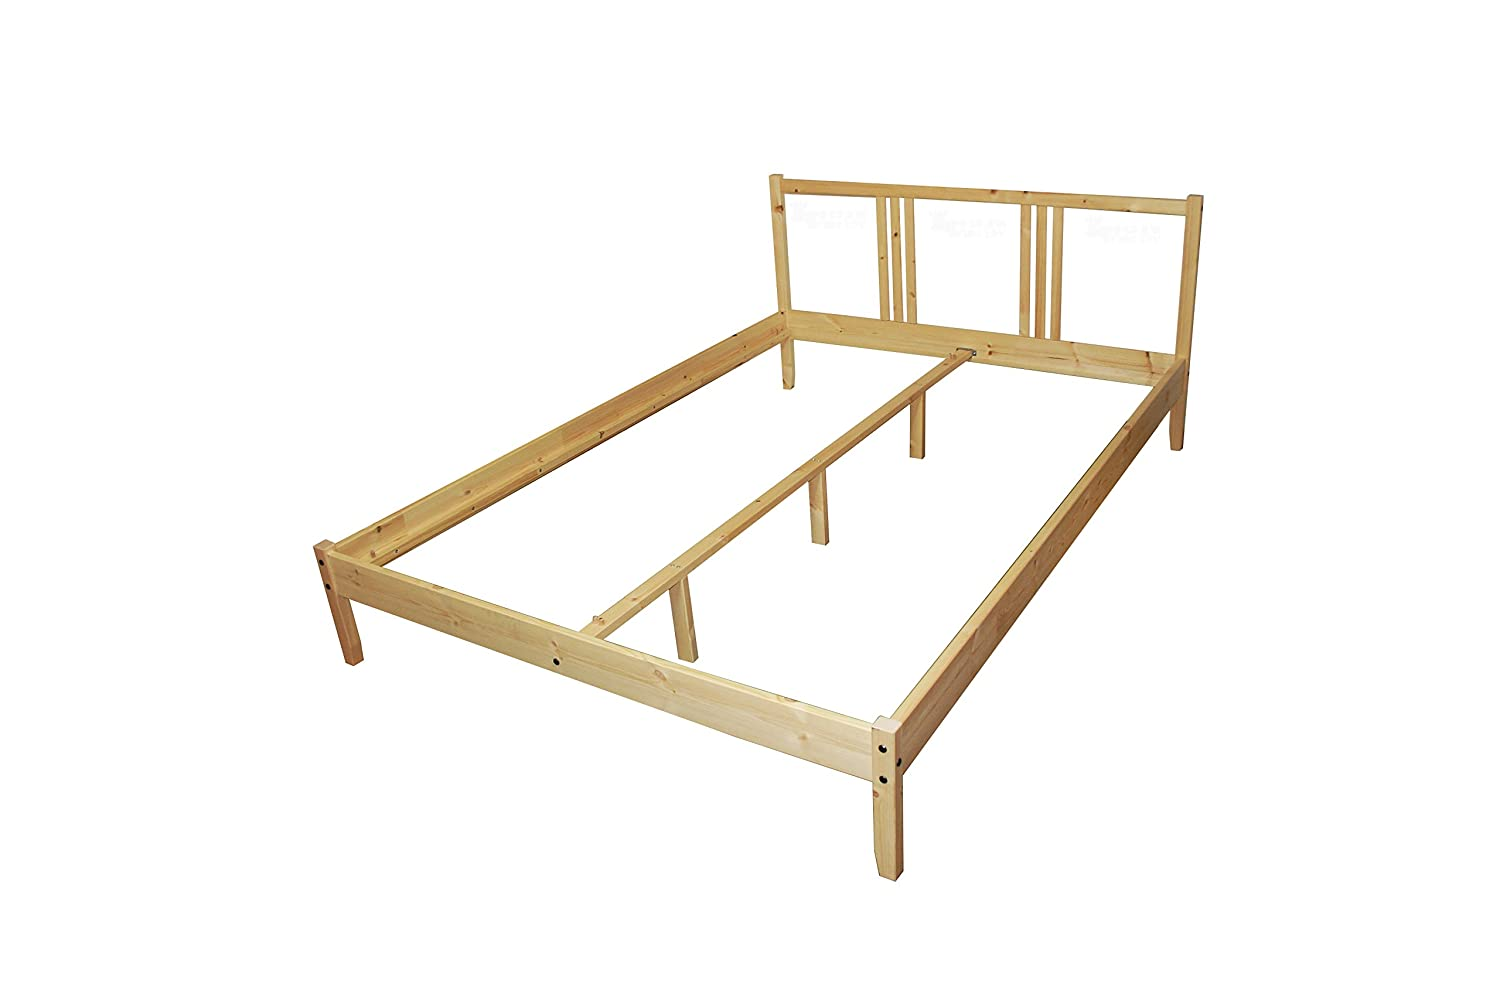 Ikea Fjellse Bed In 140 X 200 Cm Bed Frame Solid Untreated Pine